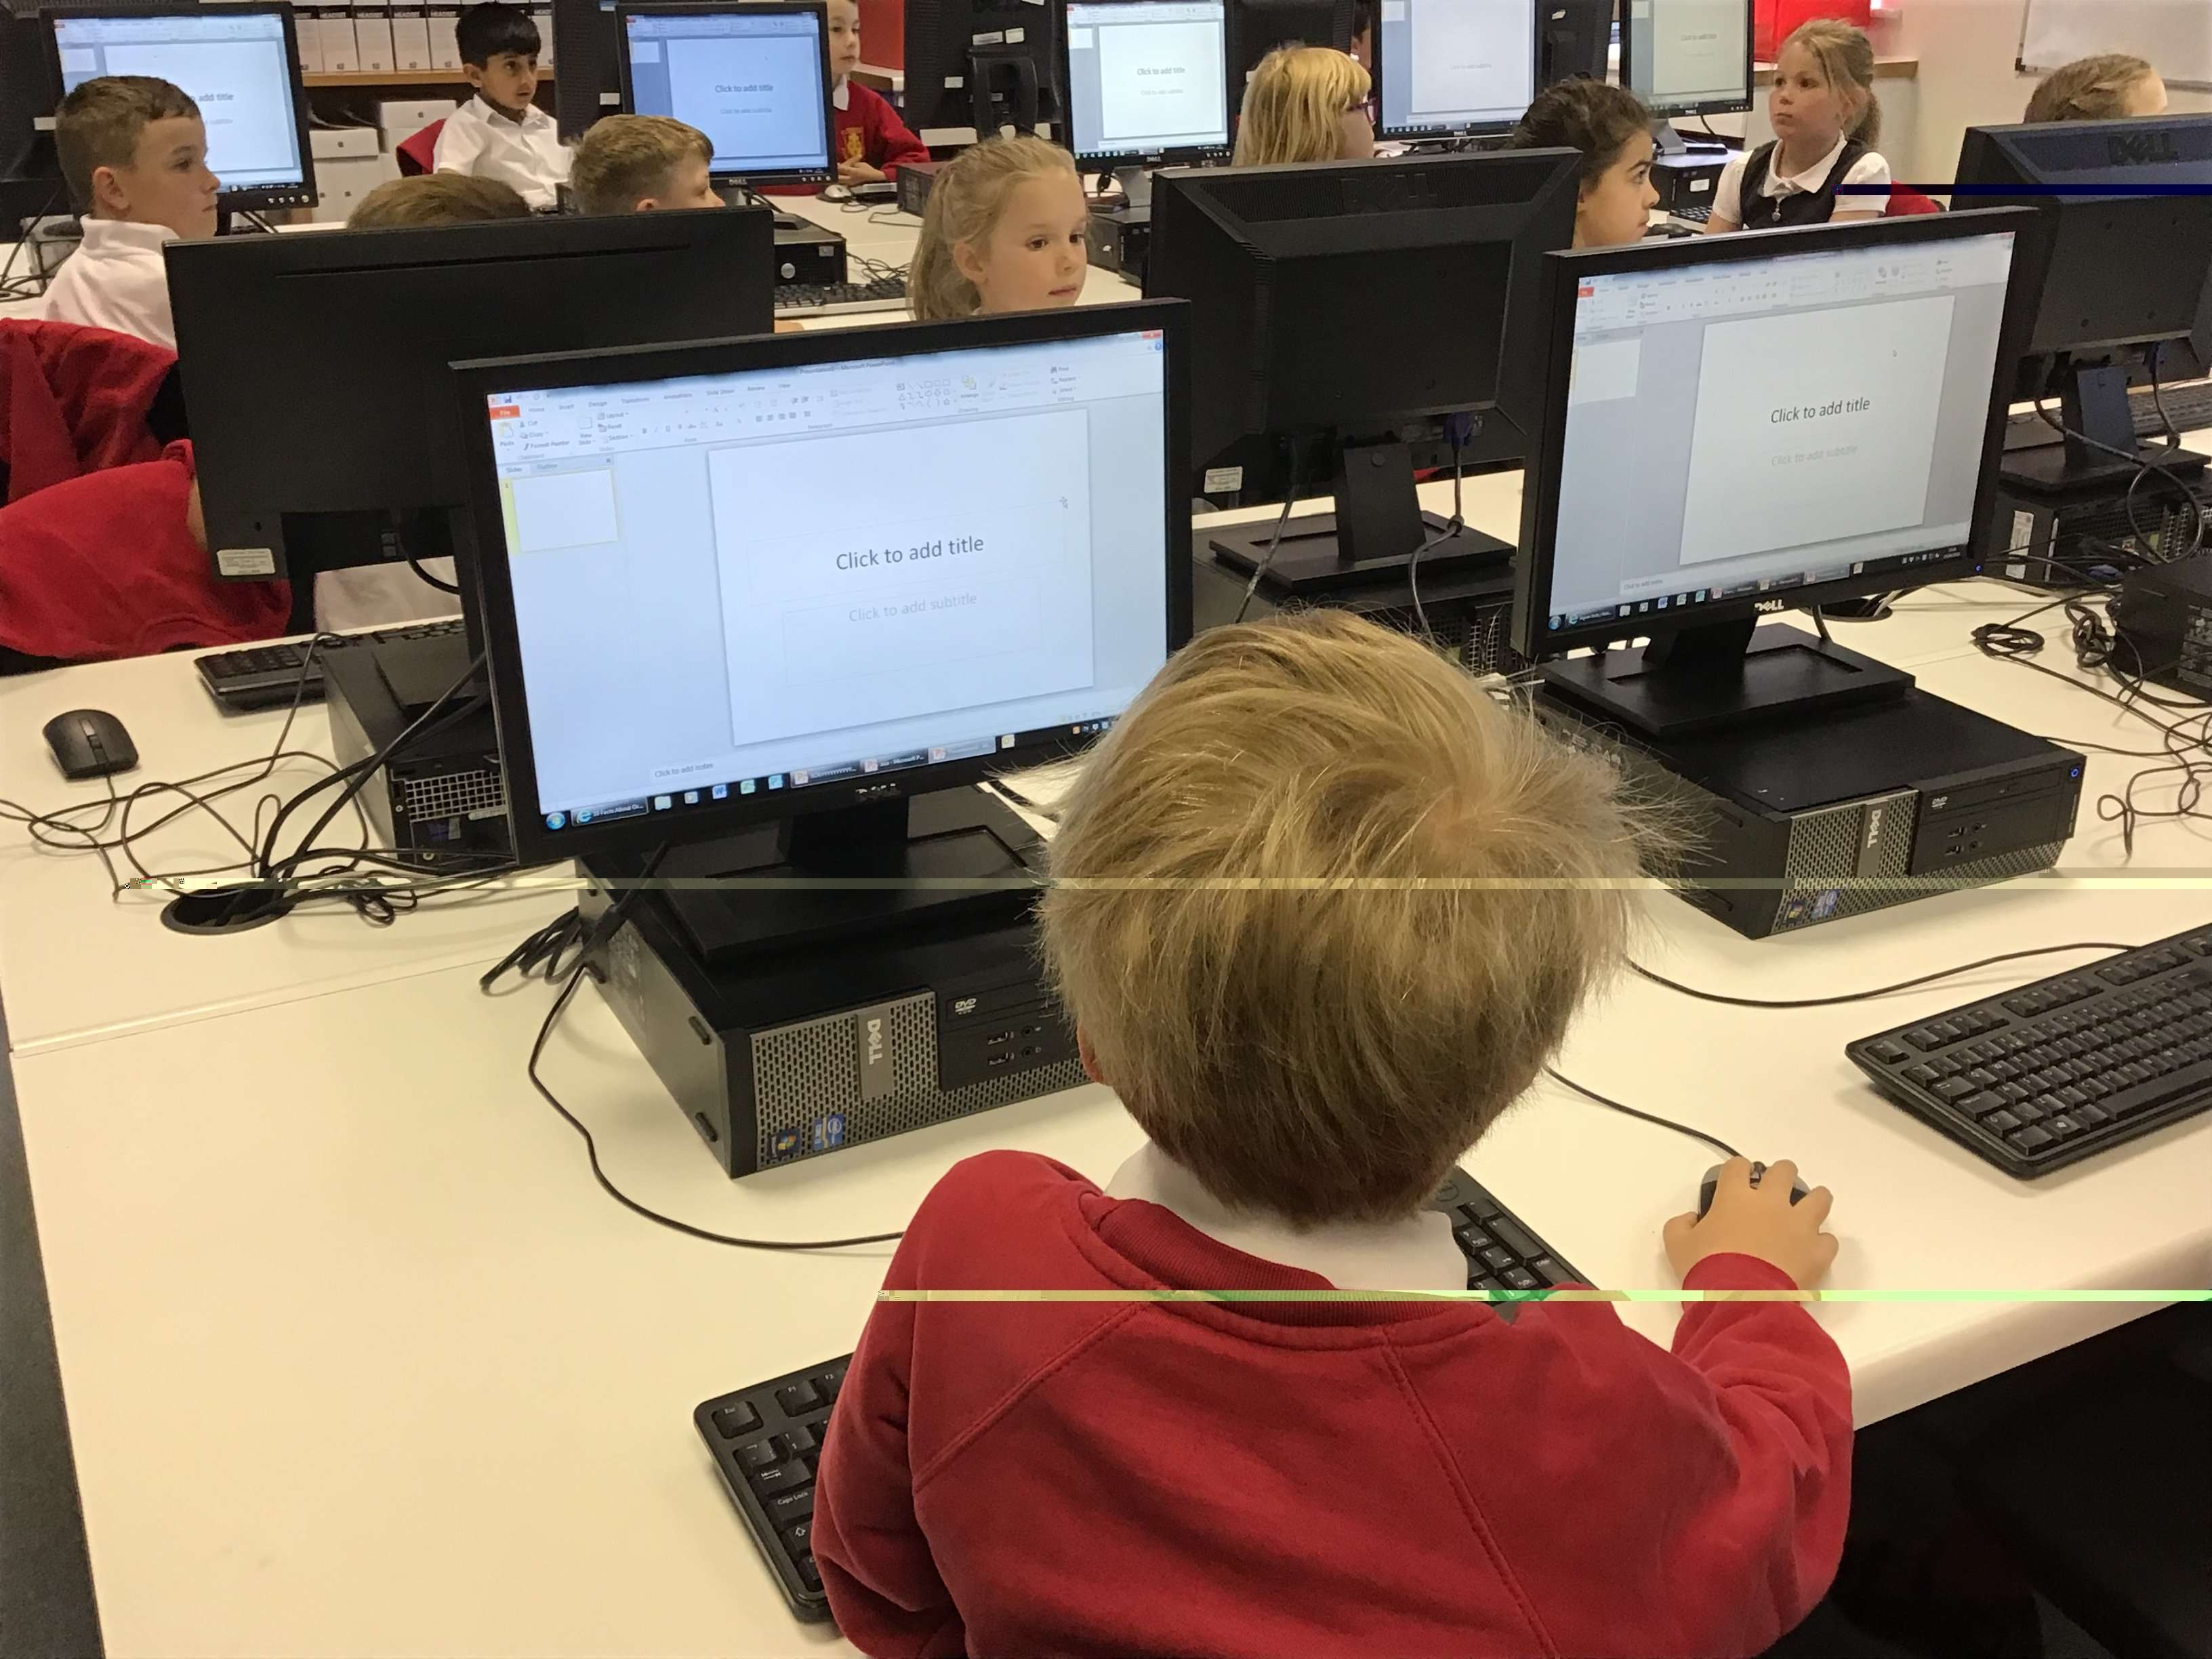 Computer Science | St Teresa's Catholic Primary School